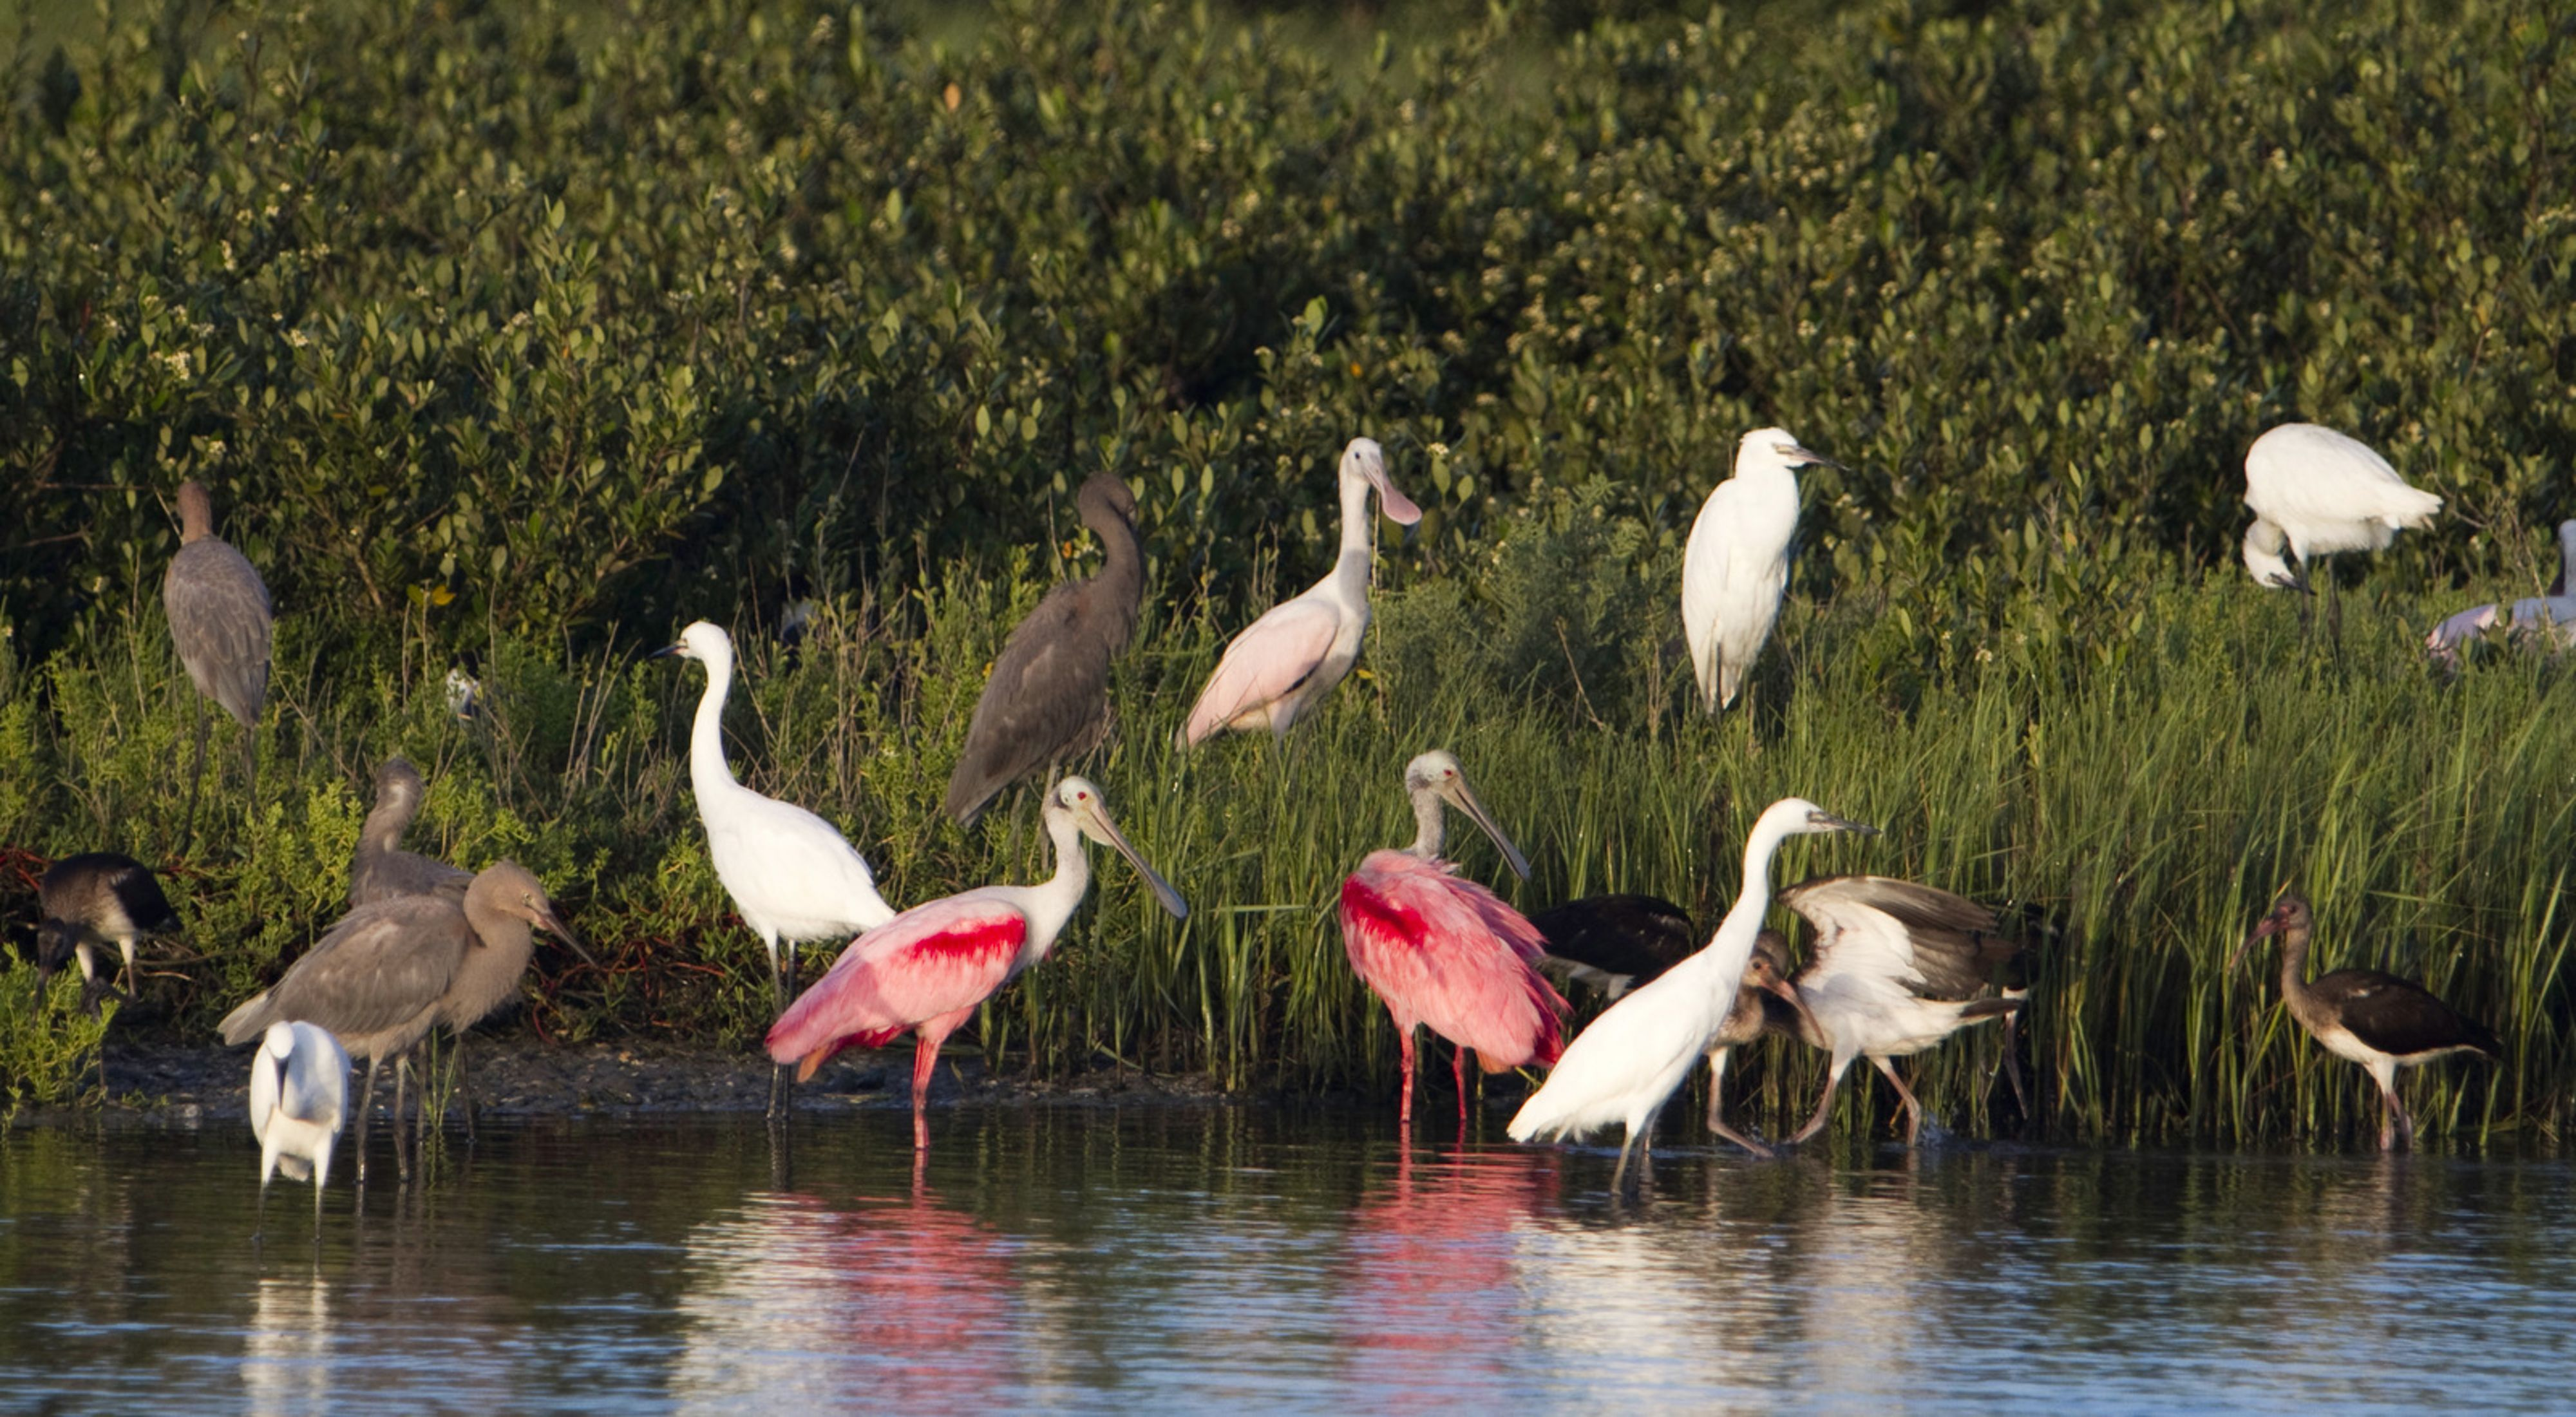 Pink, white, and brown birds stand in water and on grasses beside the water.